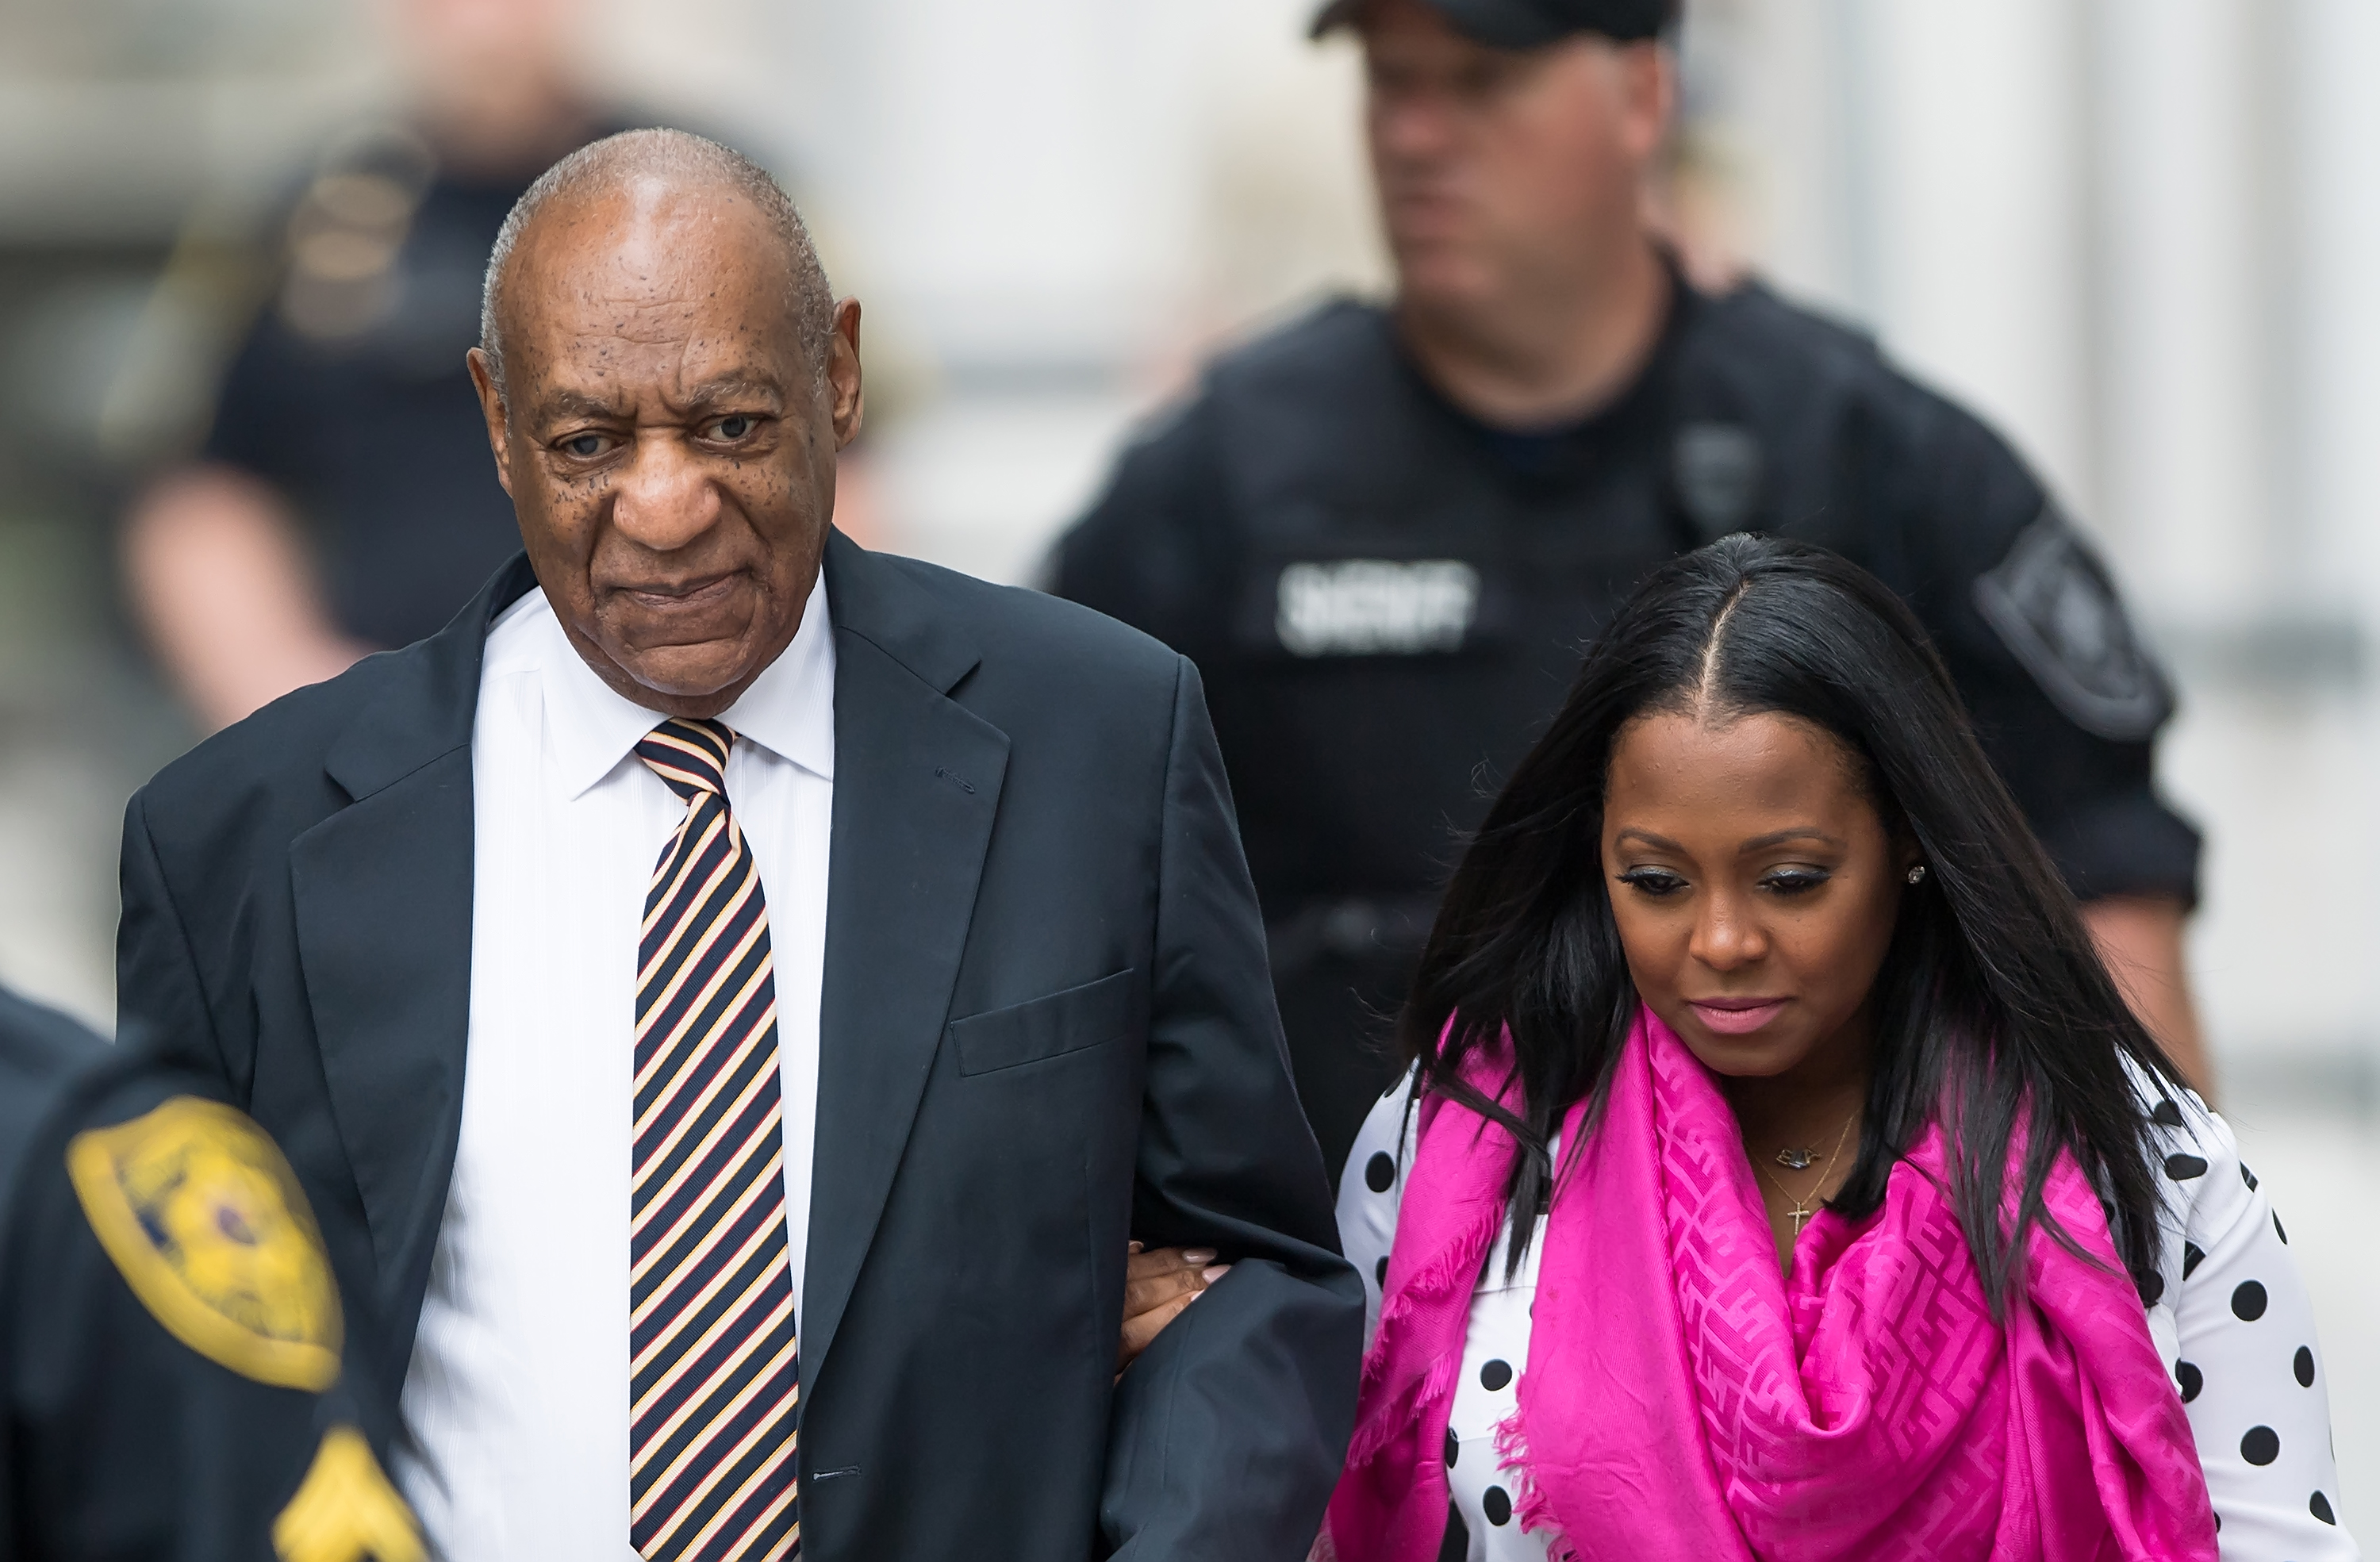 Trial Begins For Bill Cosby